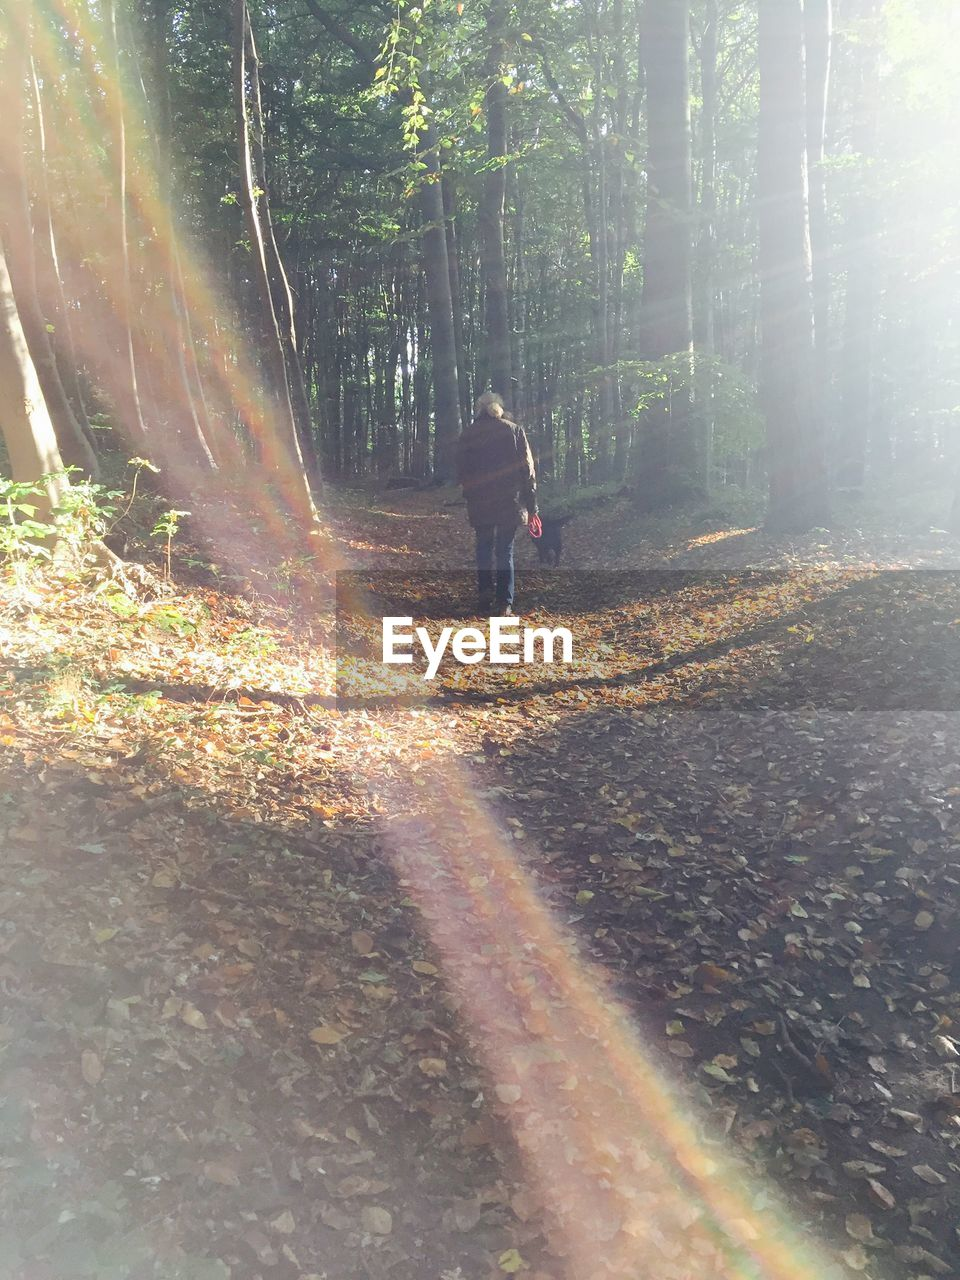 tree, sunbeam, the way forward, sunlight, full length, one person, rear view, walking, nature, forest, lens flare, autumn, road, day, real people, leaf, tranquility, outdoors, transportation, standing, growth, beauty in nature, lifestyles, men, people